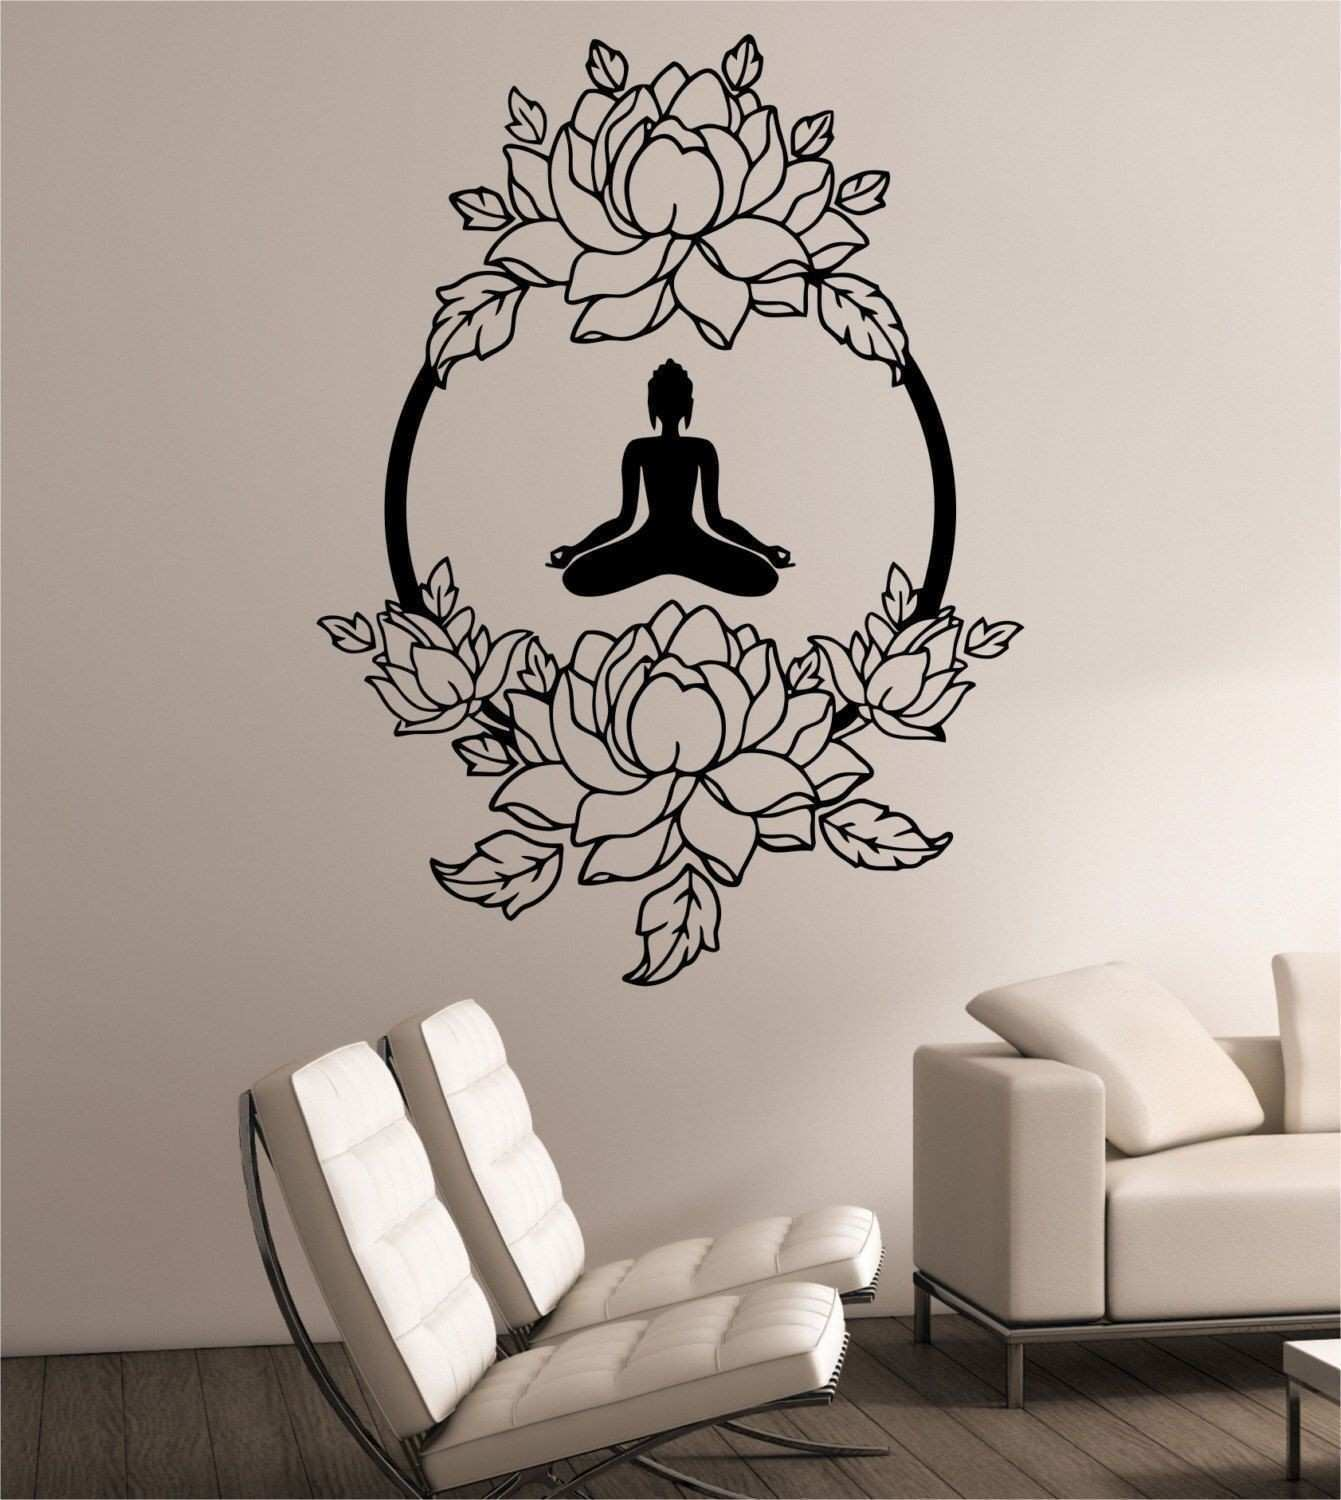 Wall Decals at Home Depot Awesome Wall Decal Luxury 1 Kirkland Wall